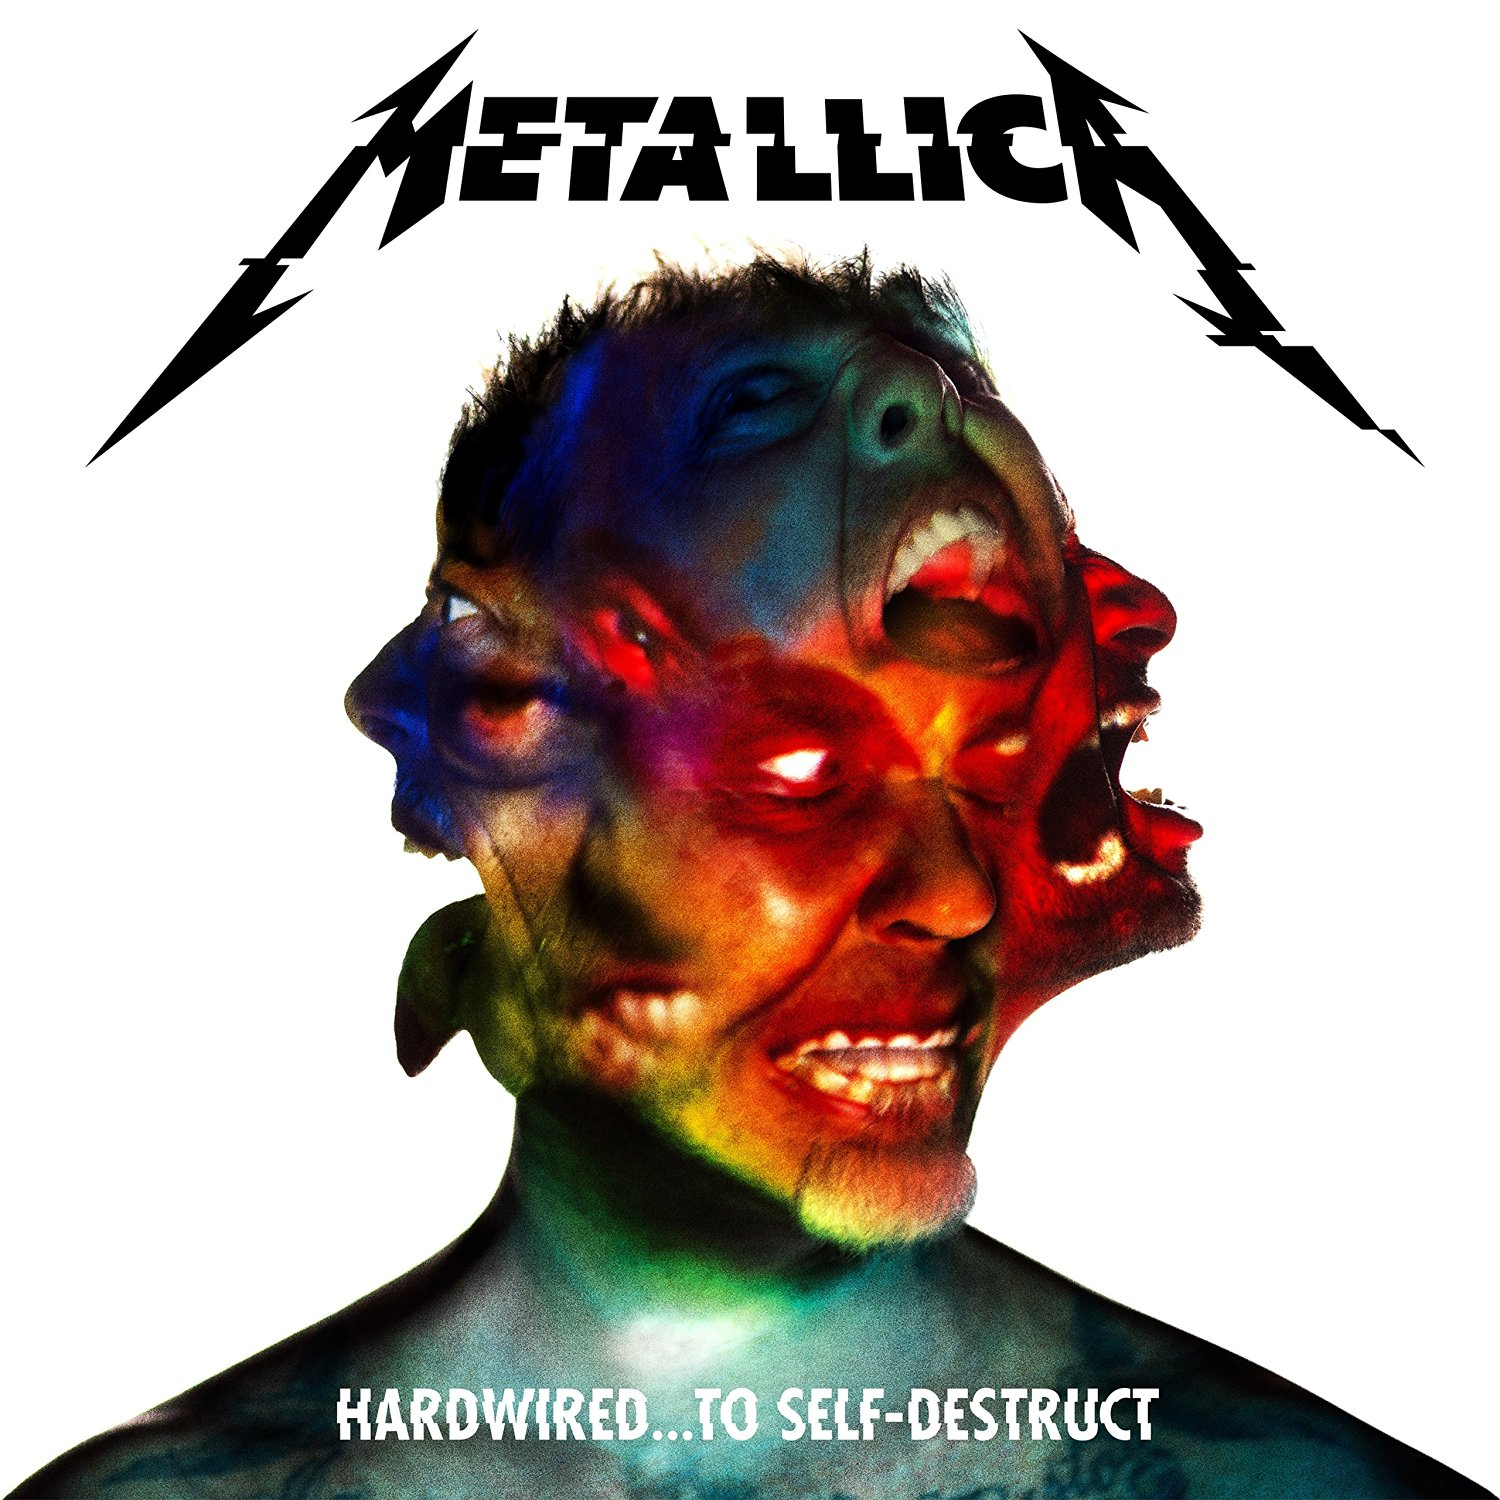 HARDWIRED..TO SELF-DESTRUCT [DELUXE] - supershop.sk